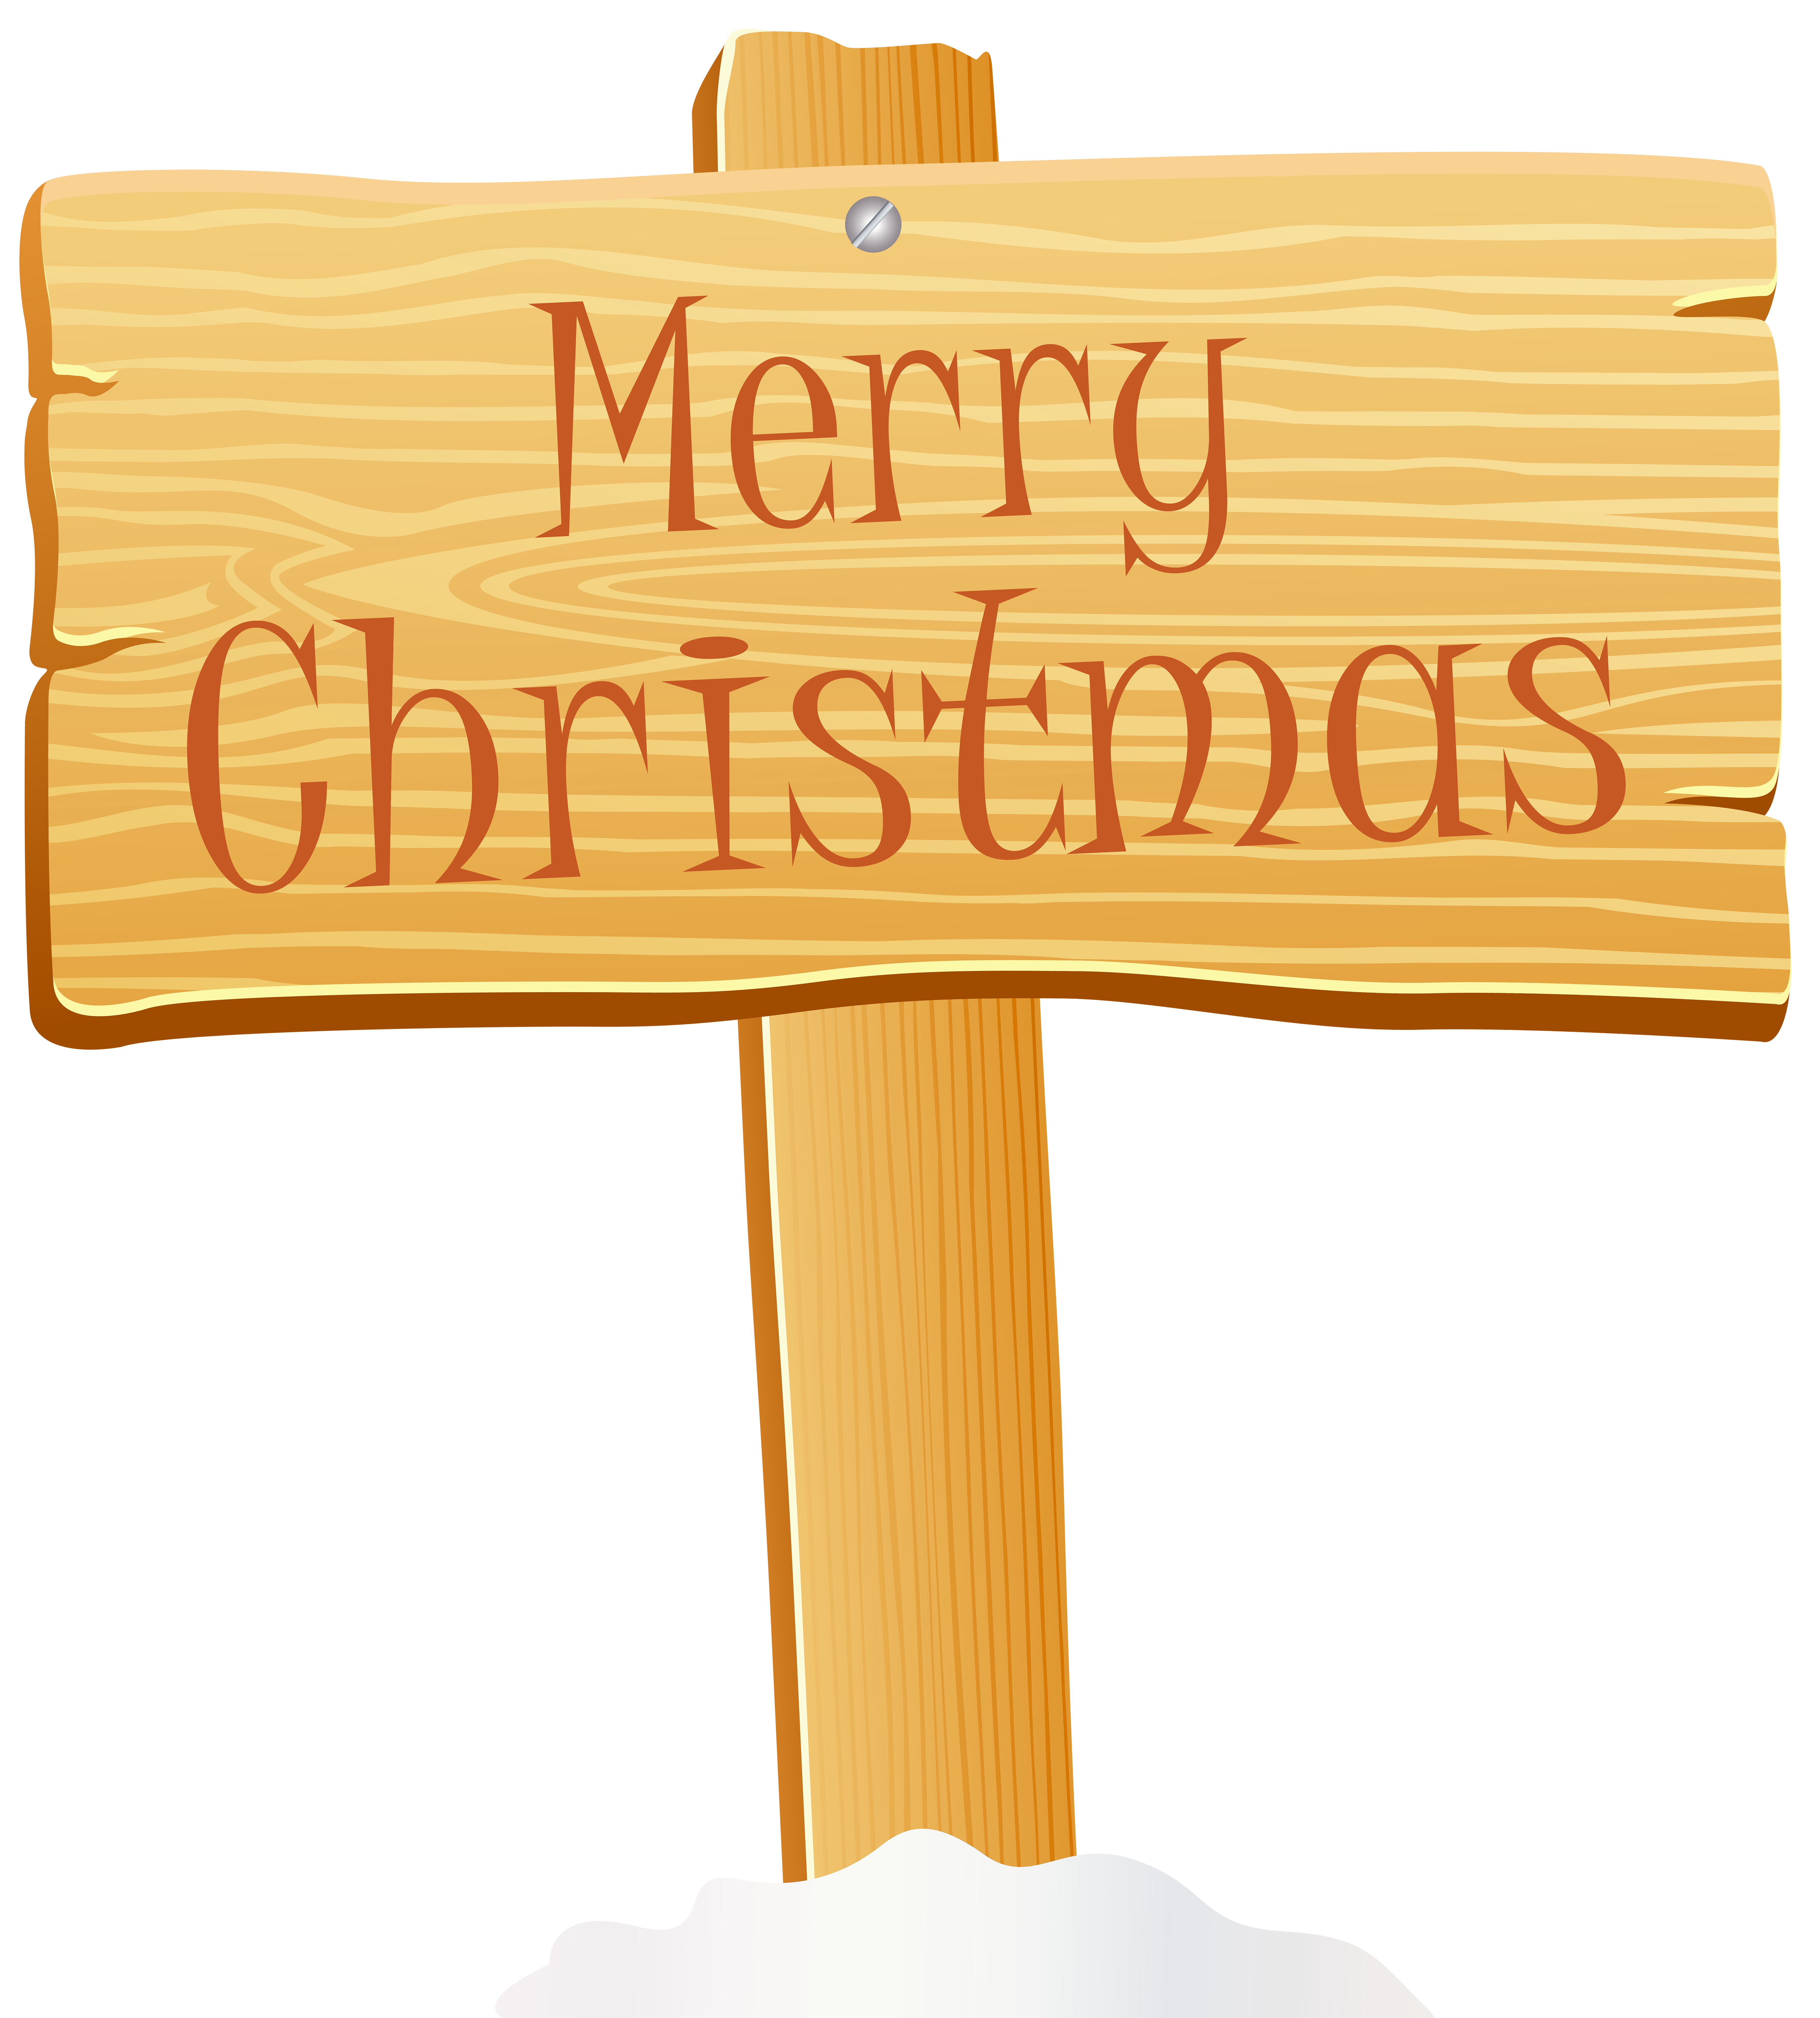 Merry Christmas Wooden Sign PNG Clip Art Image.